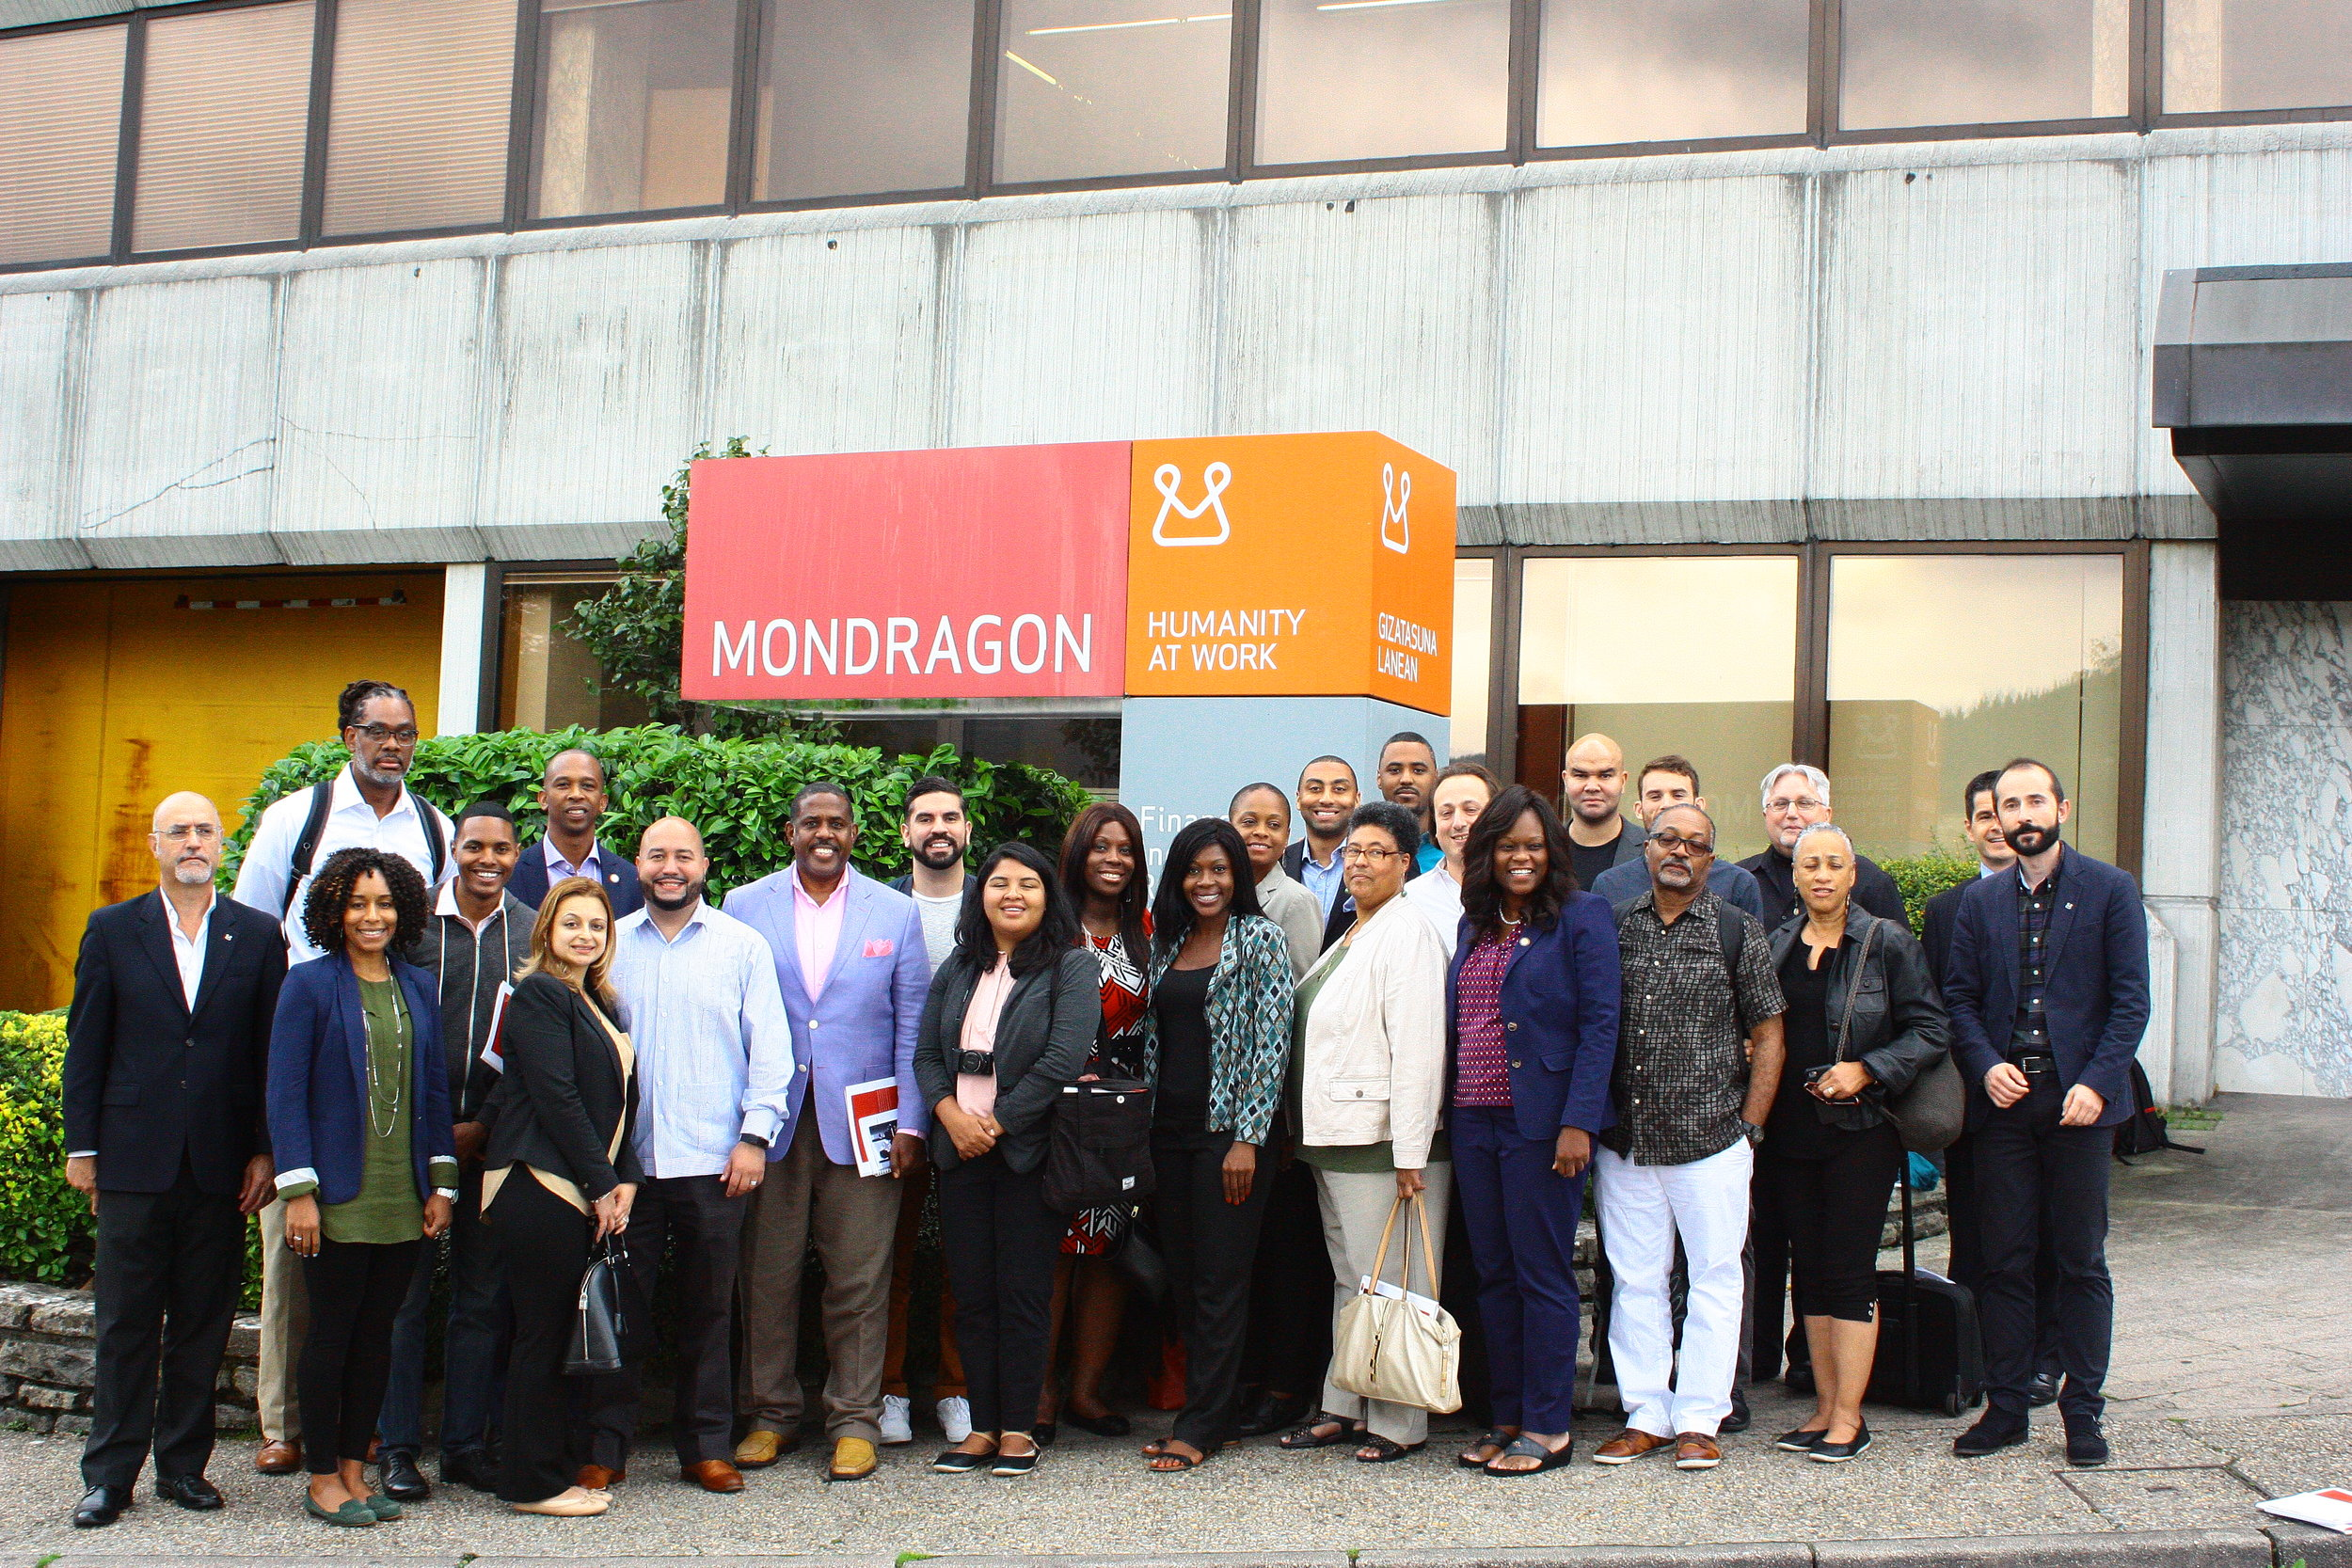 NYC Elected Officials visiting Mondragon.